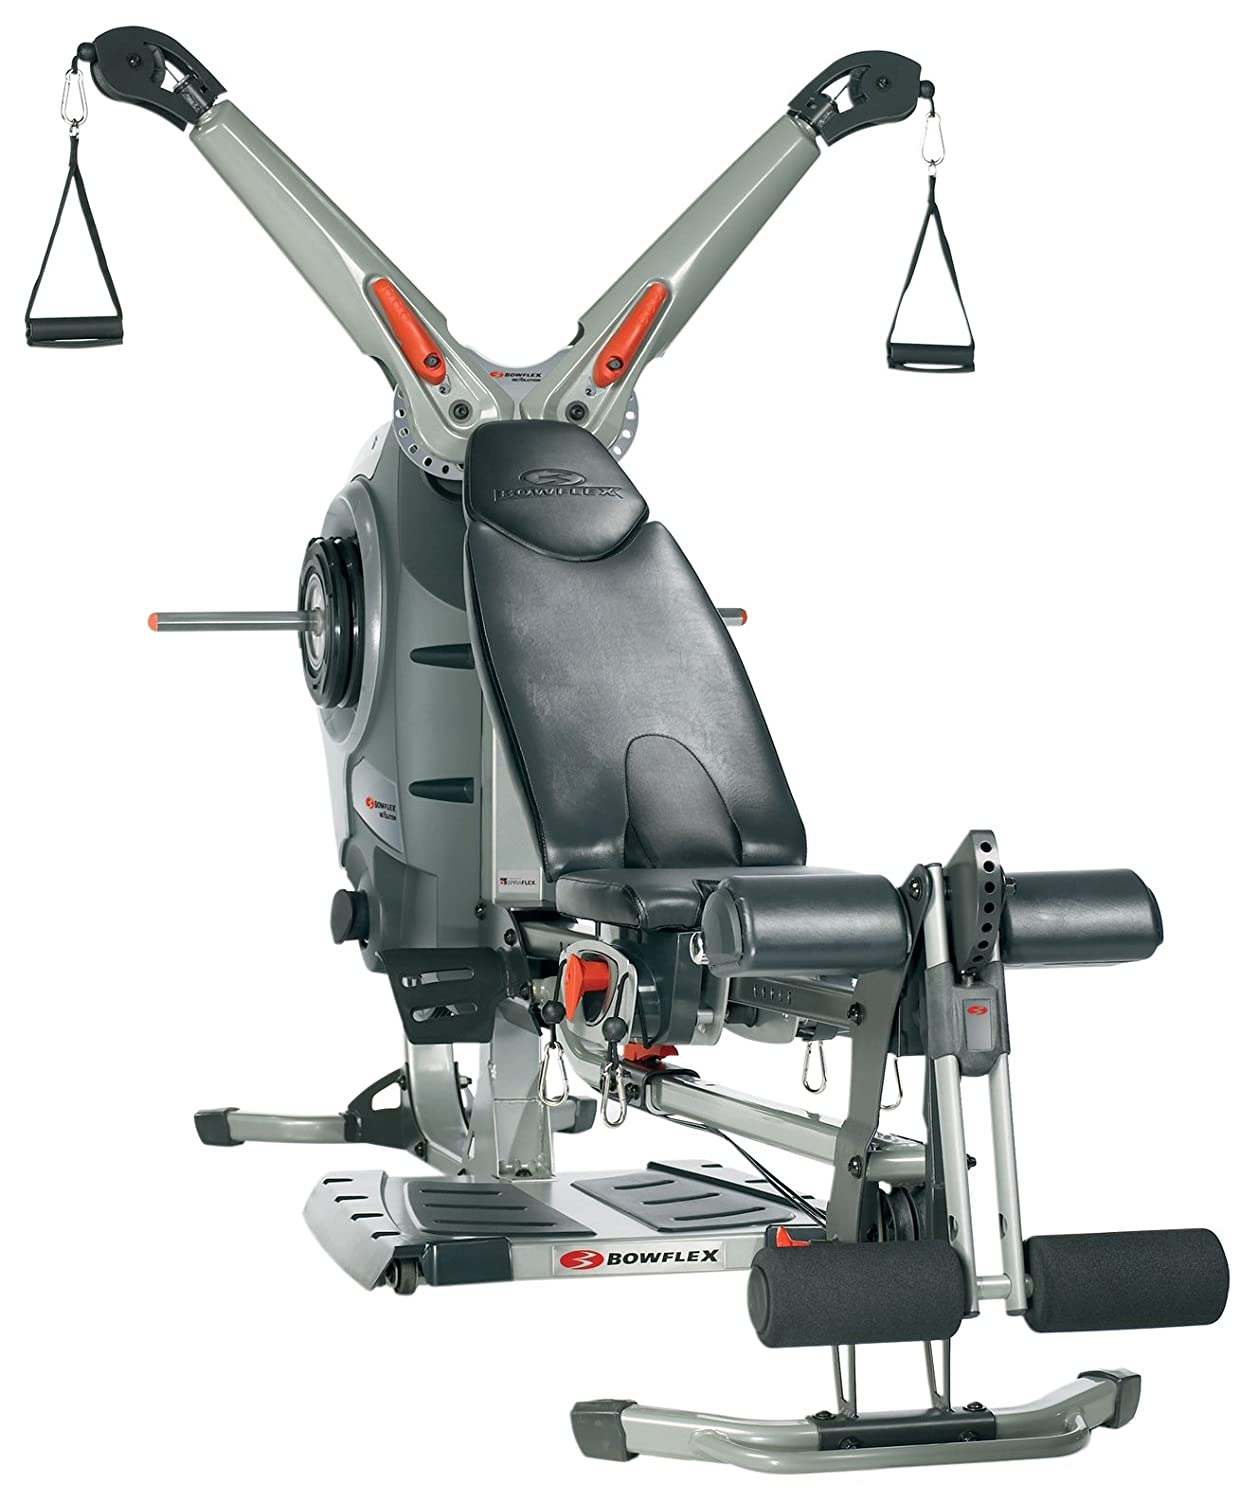 The Bowflex Revolution Review